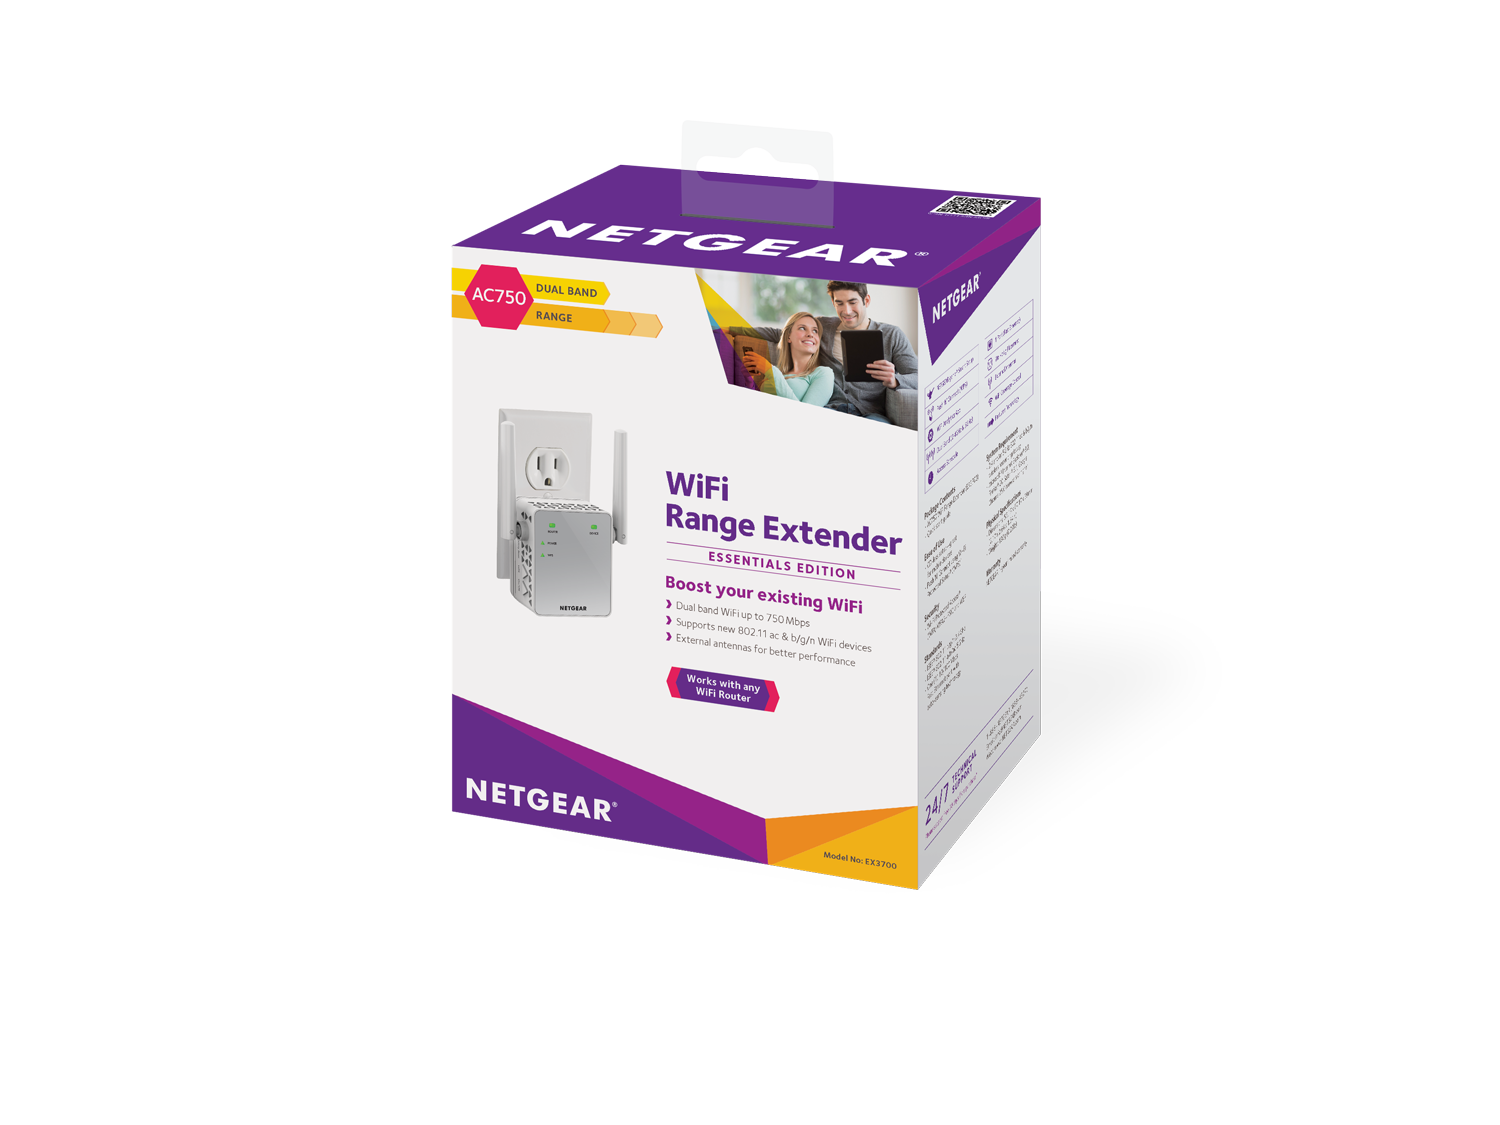 NETGEAR EX3700 RANGE EXTENDER WINDOWS 10 DOWNLOAD DRIVER